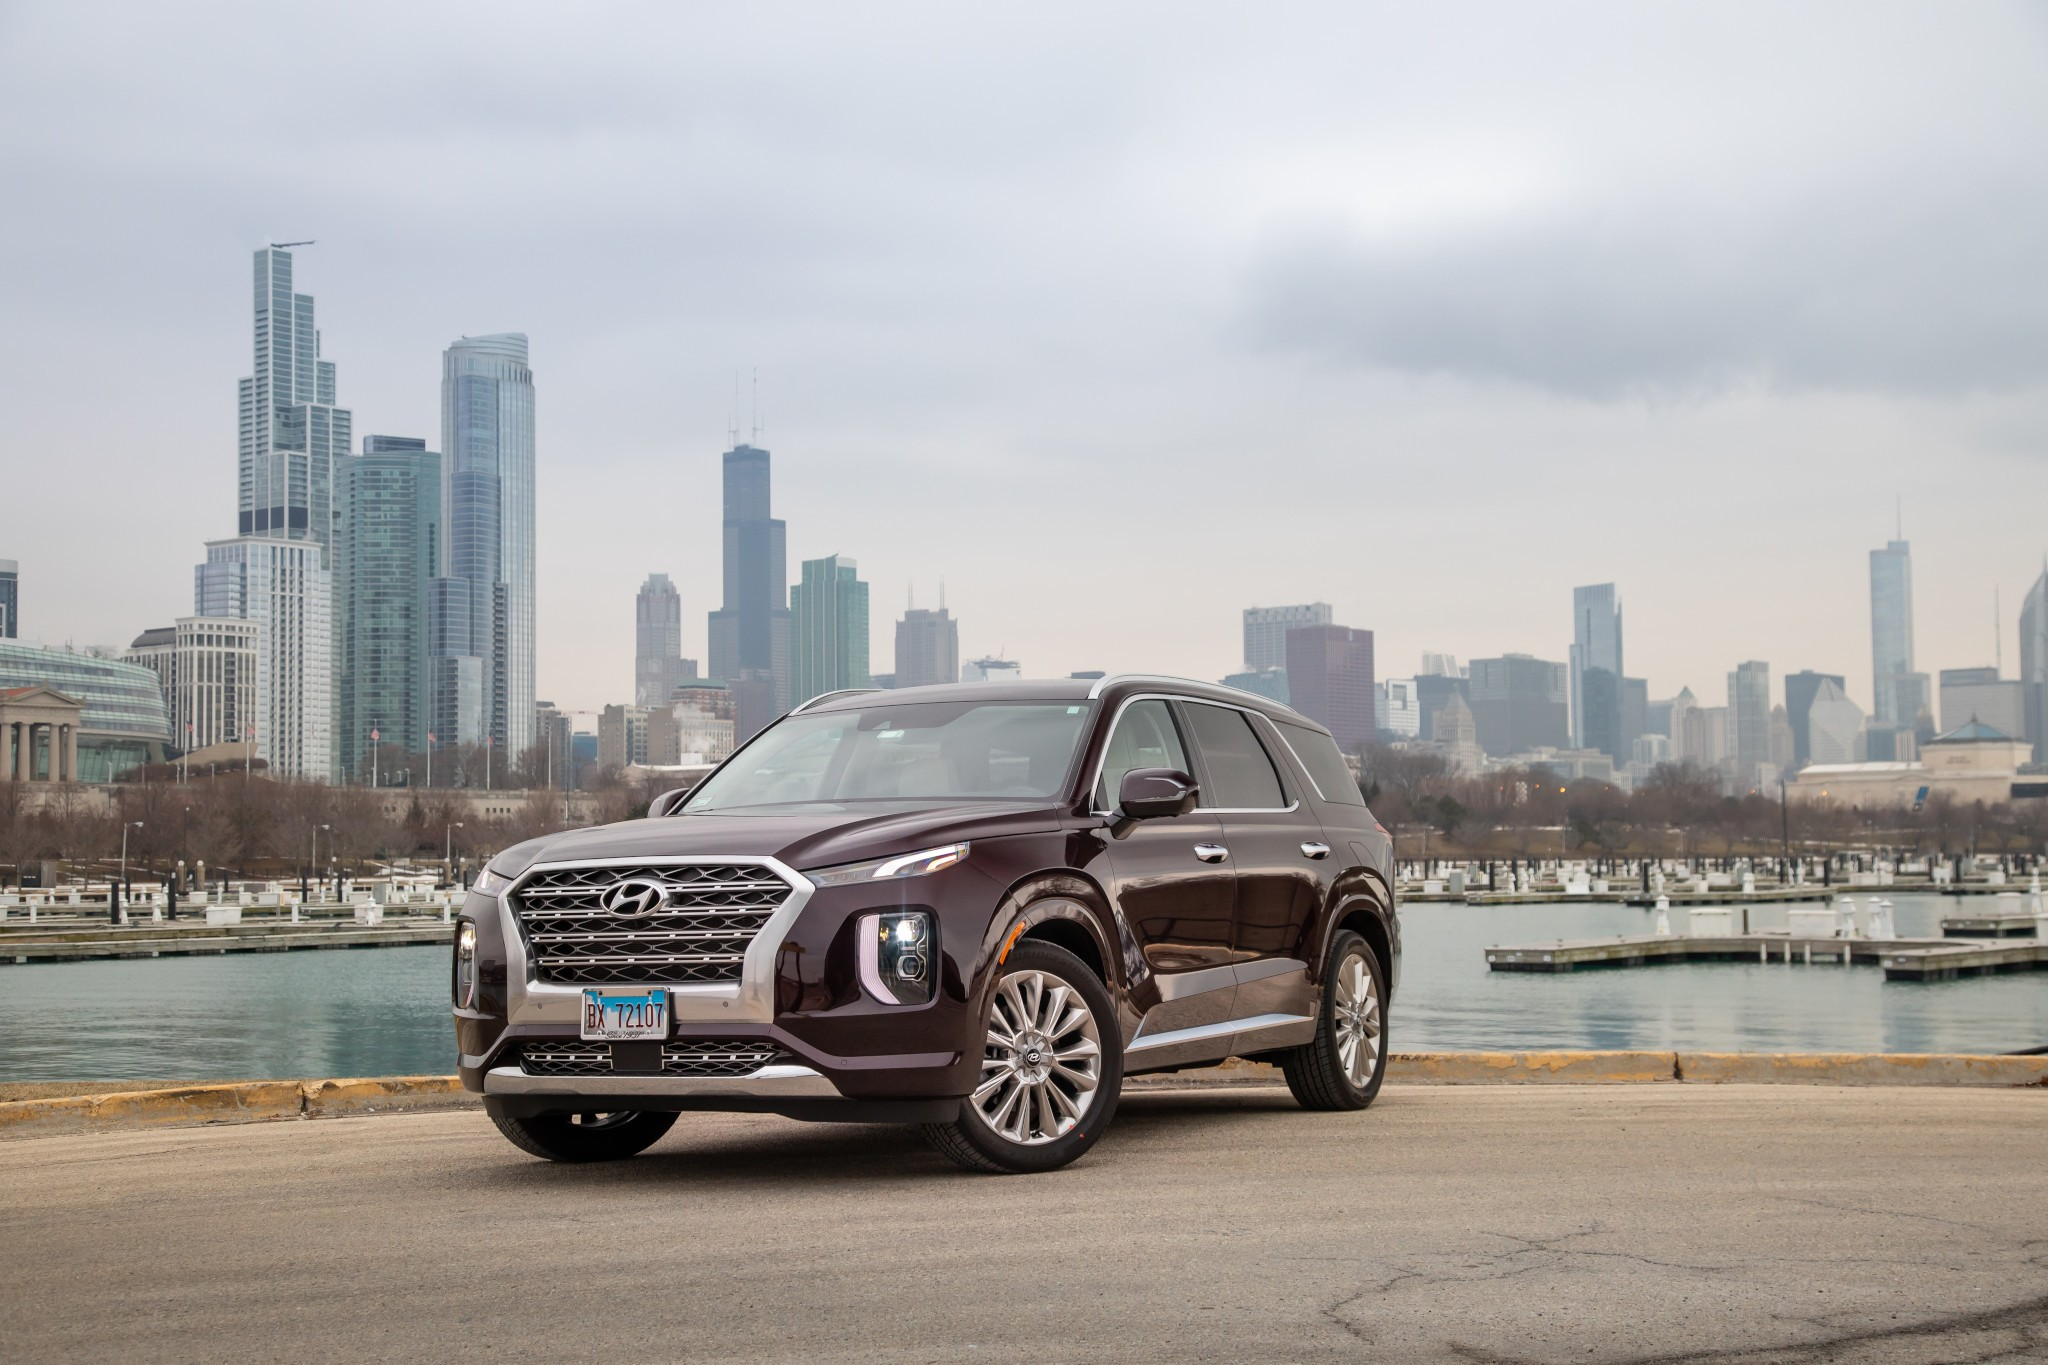 We Bought a Hyundai Palisade: See How Much We Paid